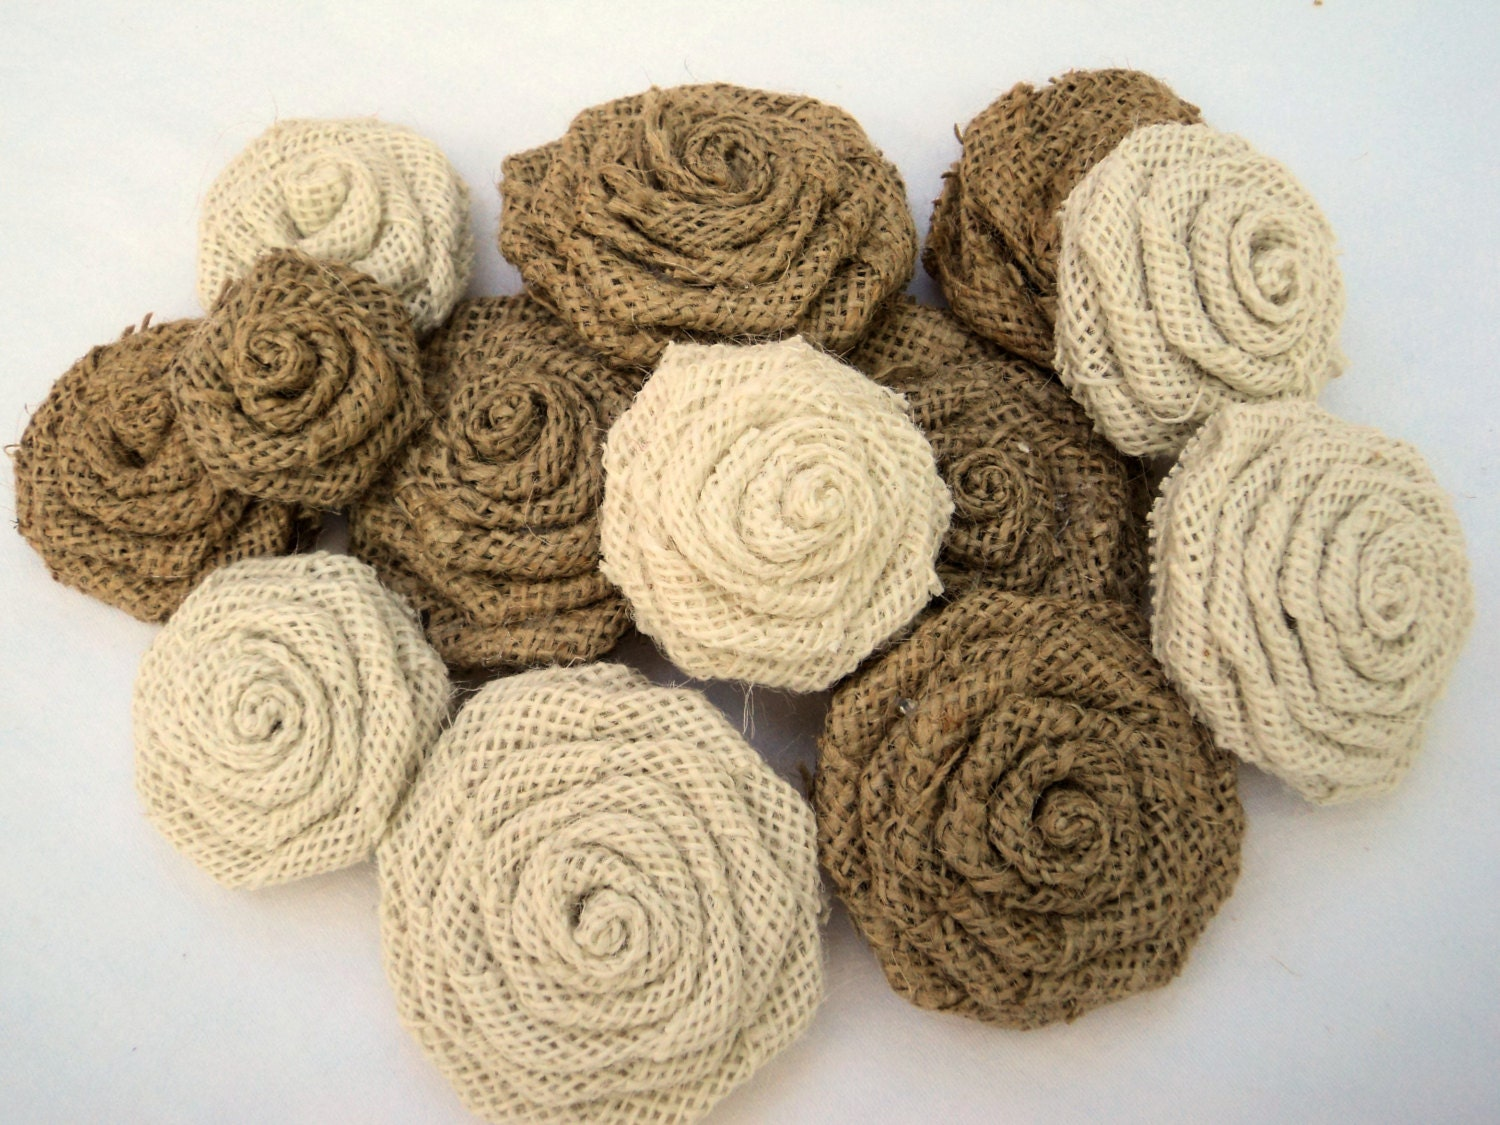 Rustic Wedding Natural and Ivory Burlap Flowers 15 Burlap